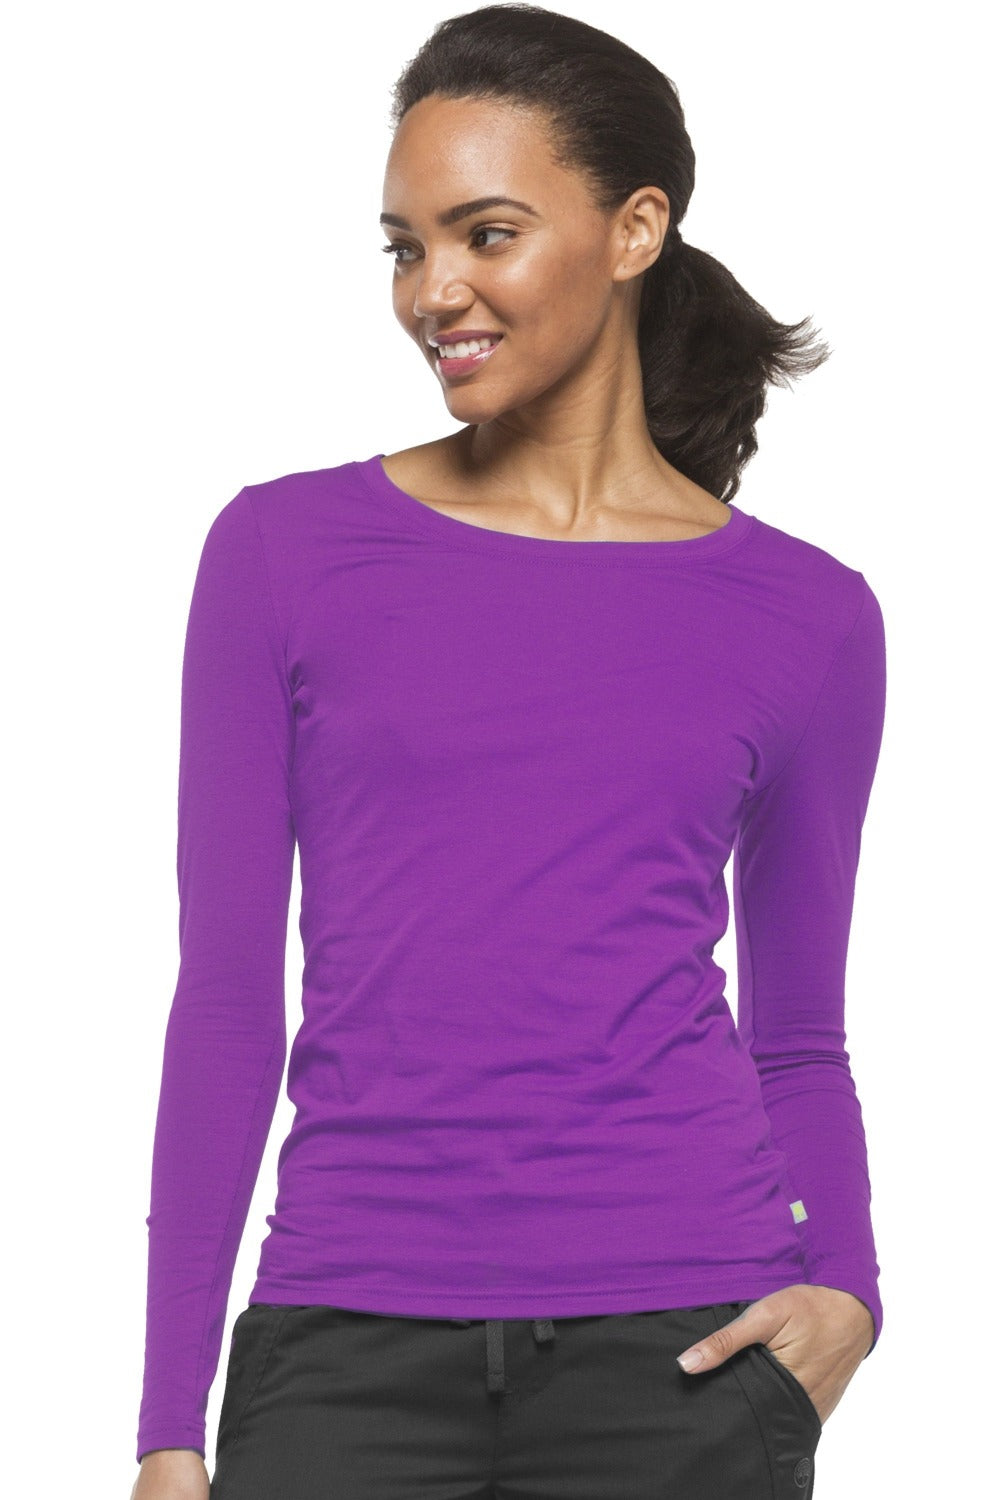 Healing Hands Purple Label Melissa Tee 5047 - Parker's Clothing & Gifts